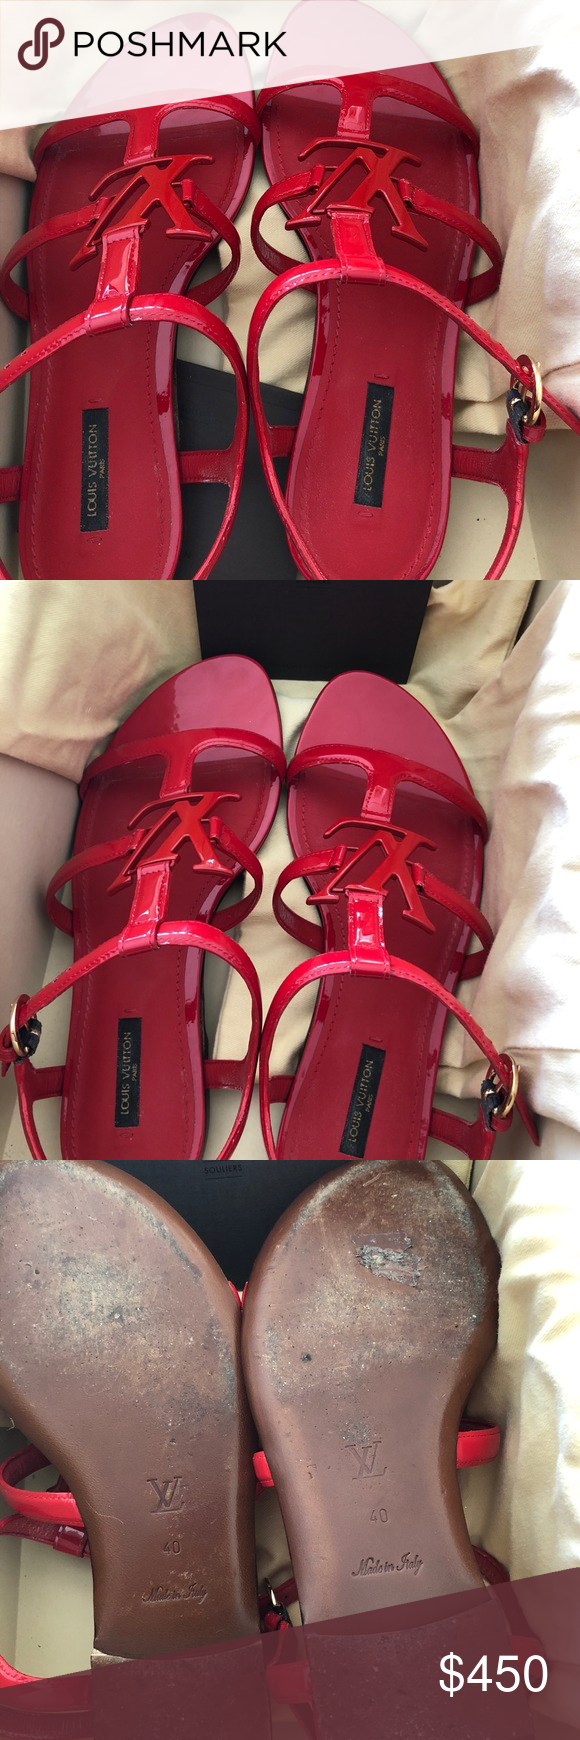 1589813b5567a LouisVuitton Paradiso sandals. Red patent leather Paradiso sandals. Size  40